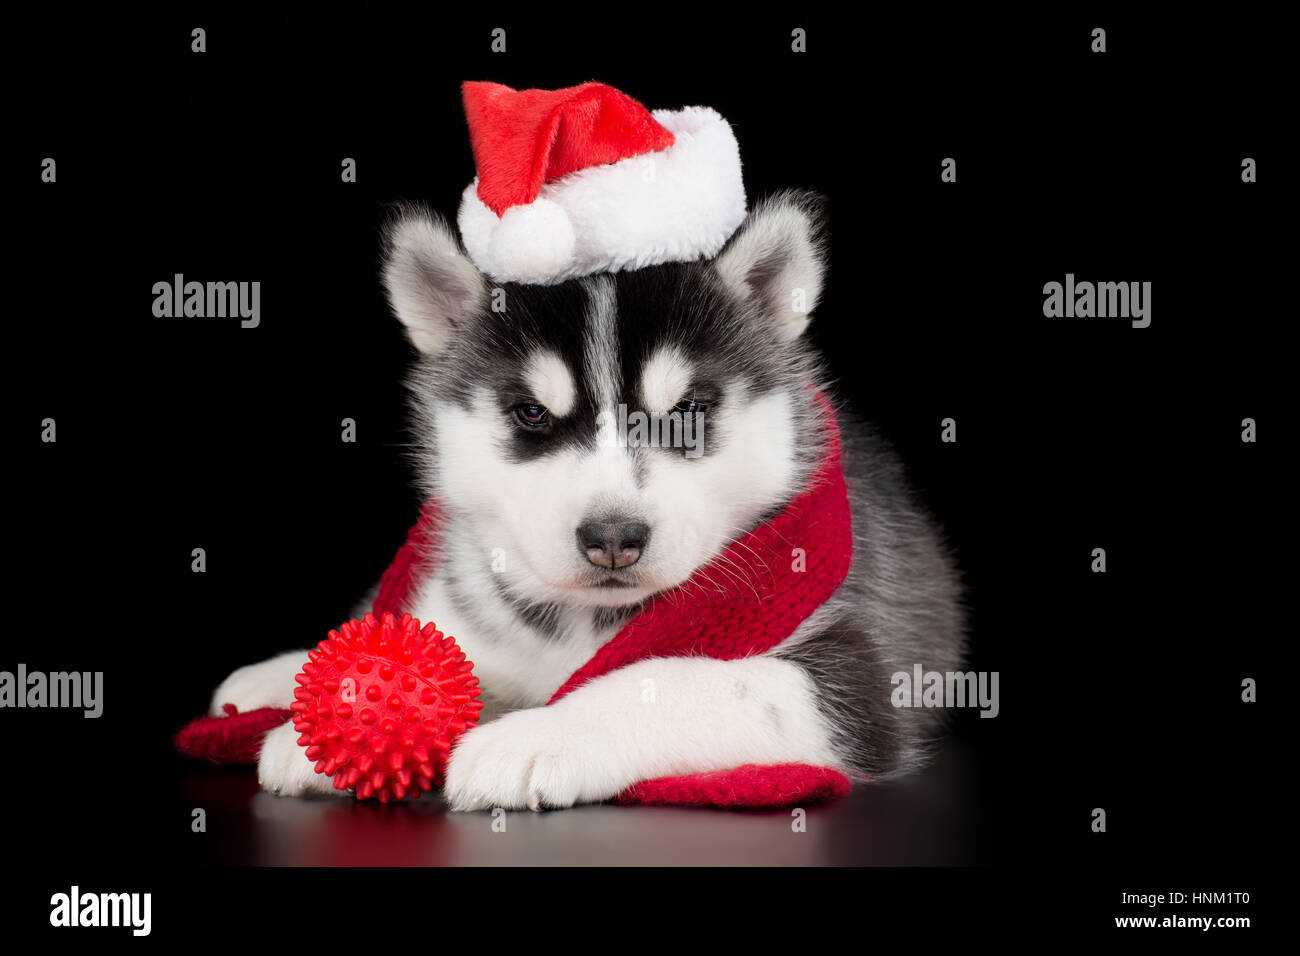 Merry Christmas Puppies.Cute Siberian Husky Puppy In The Santa Hat Merry Christmas